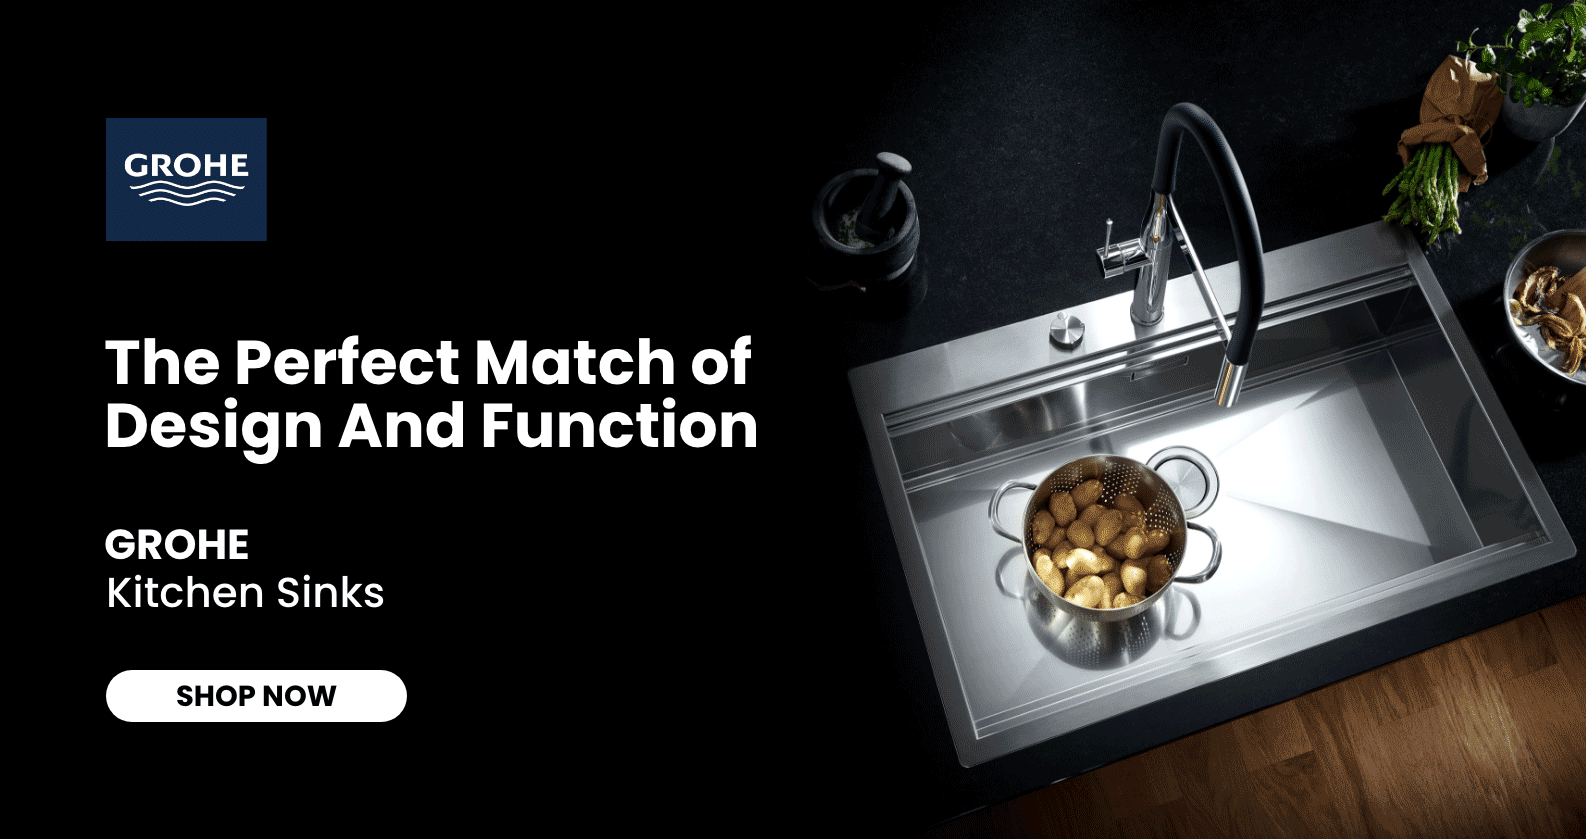 GROHE Kitchen Sinks at xTWOstore